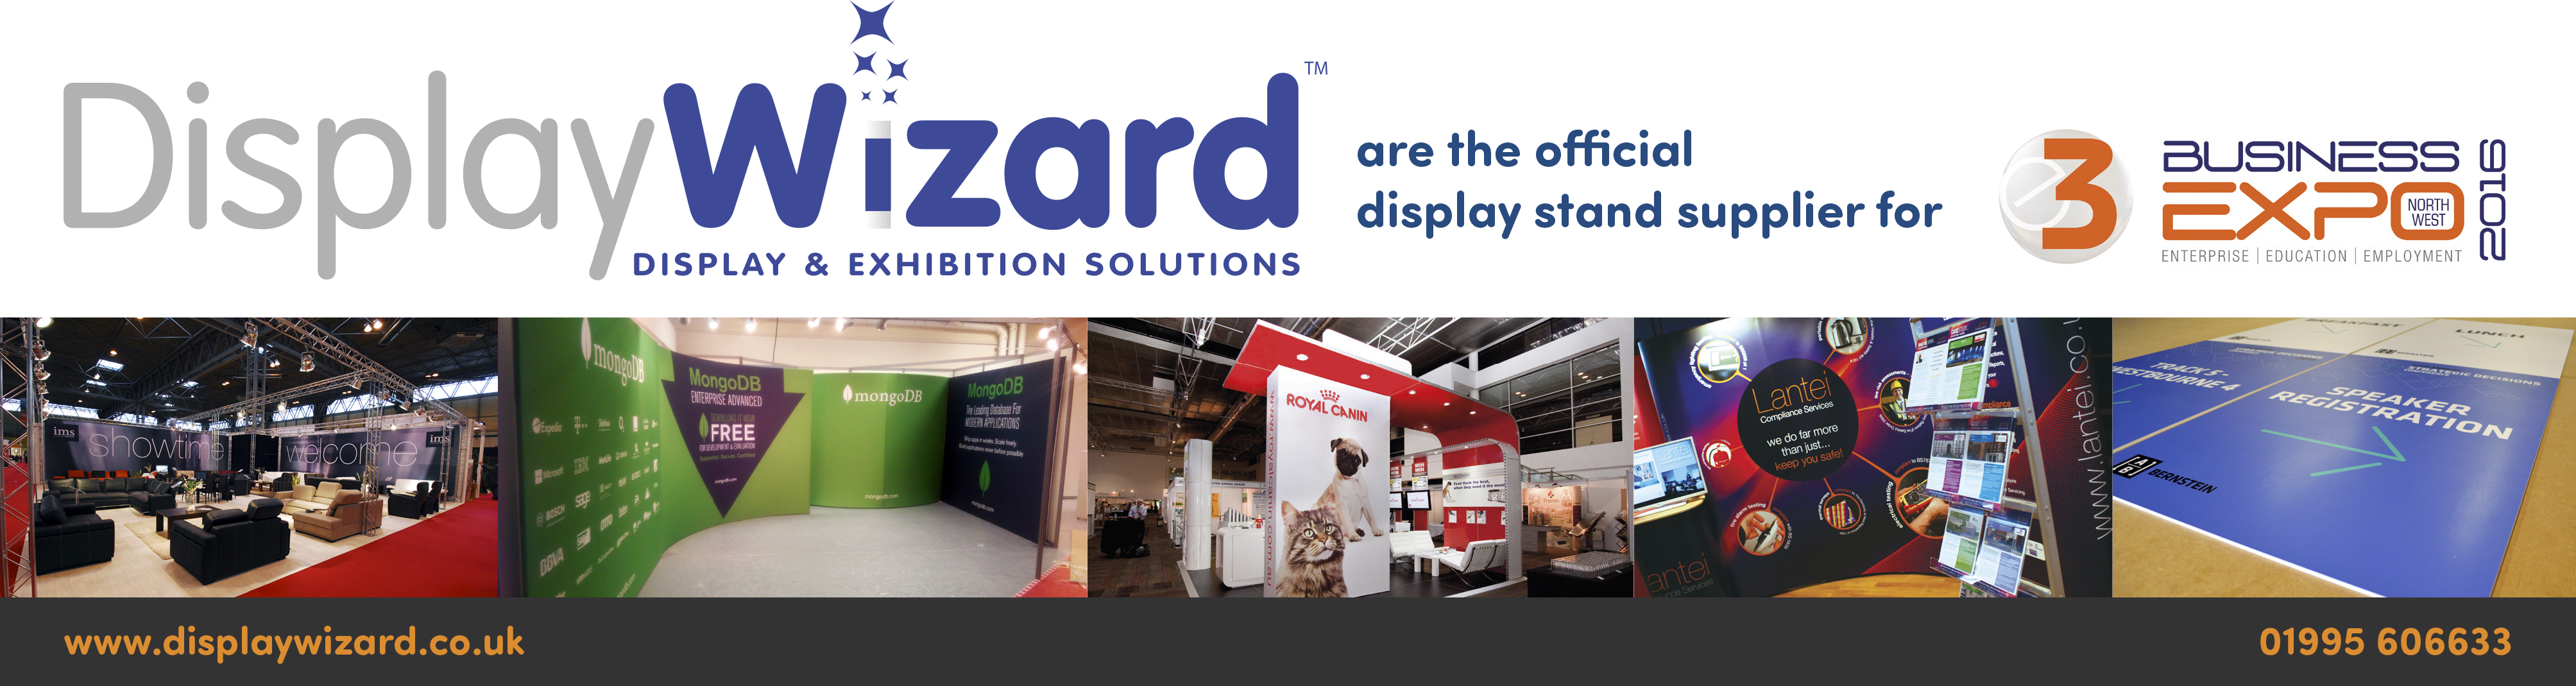 e3 Business expo display stand supplier